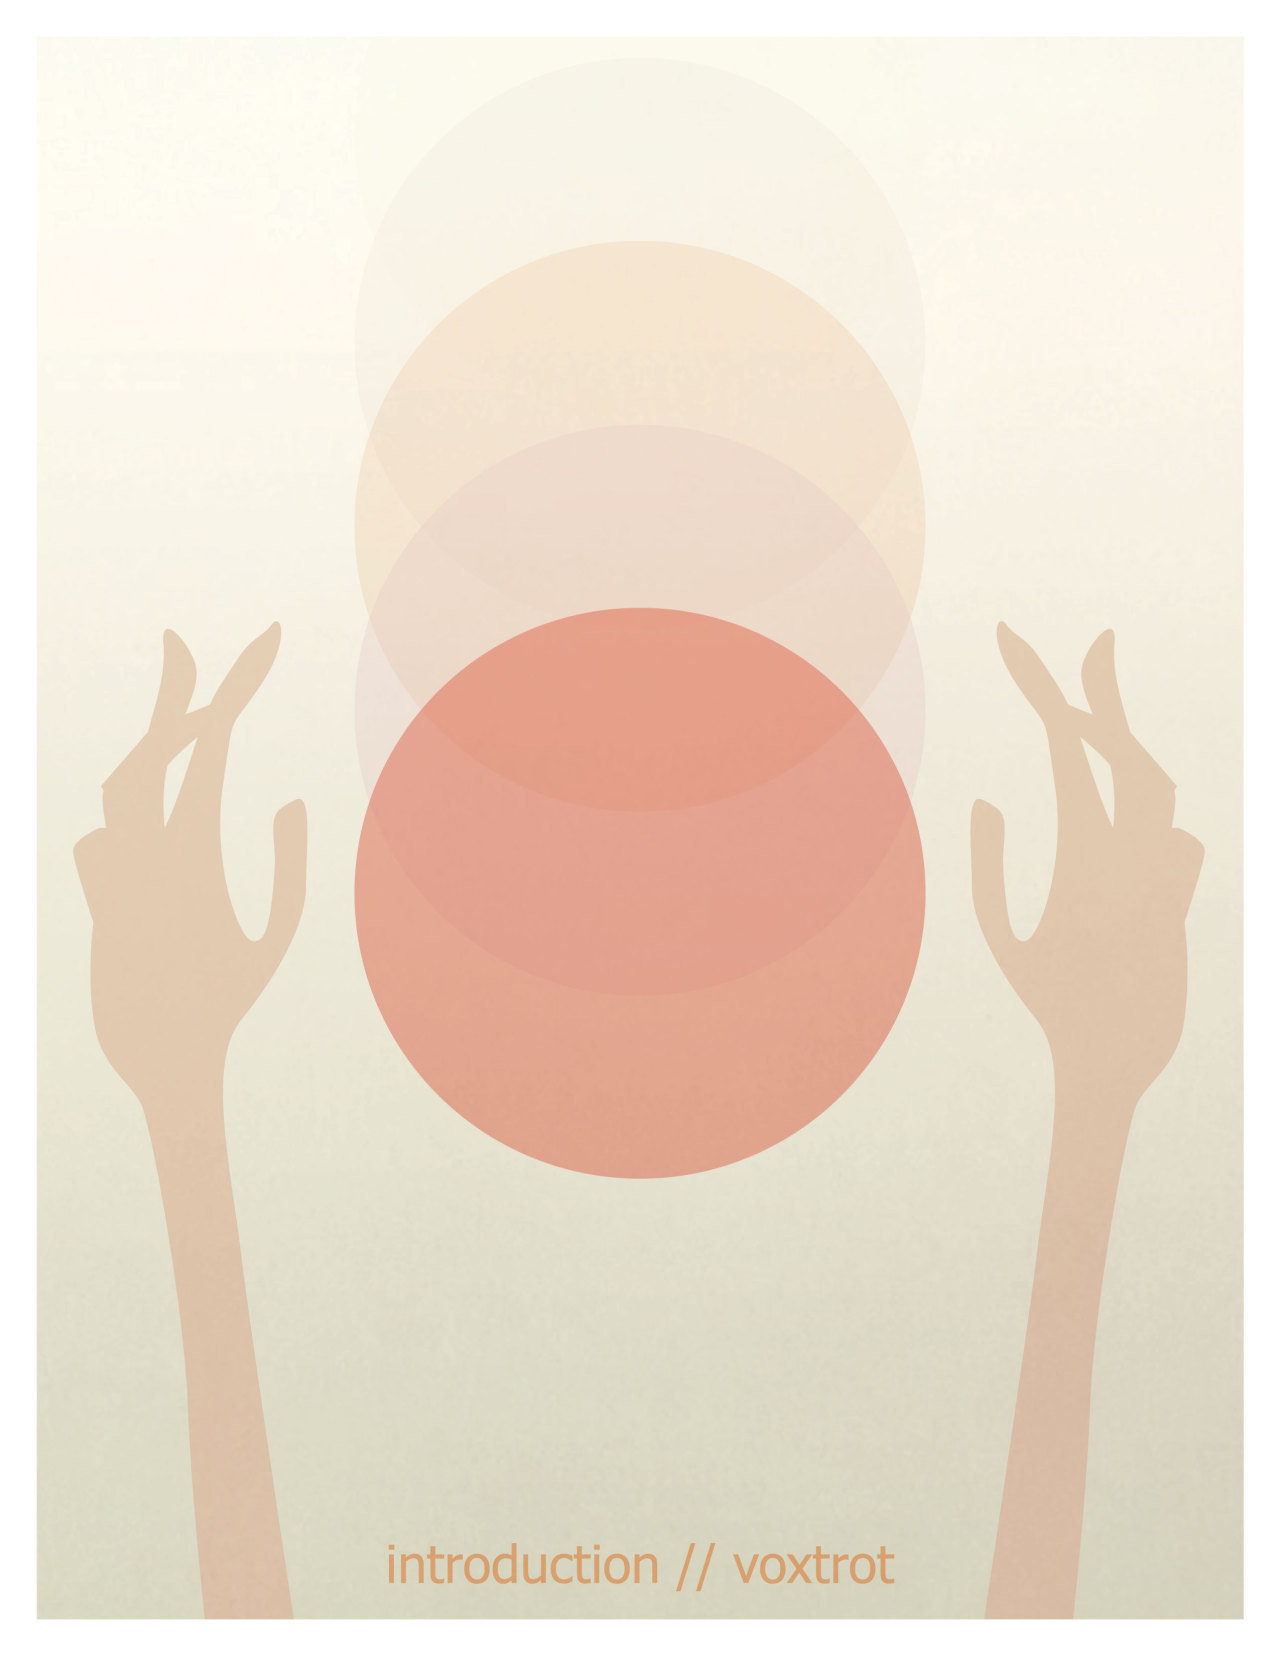 100songposters:  Day 10: Introduction by Voxtrot